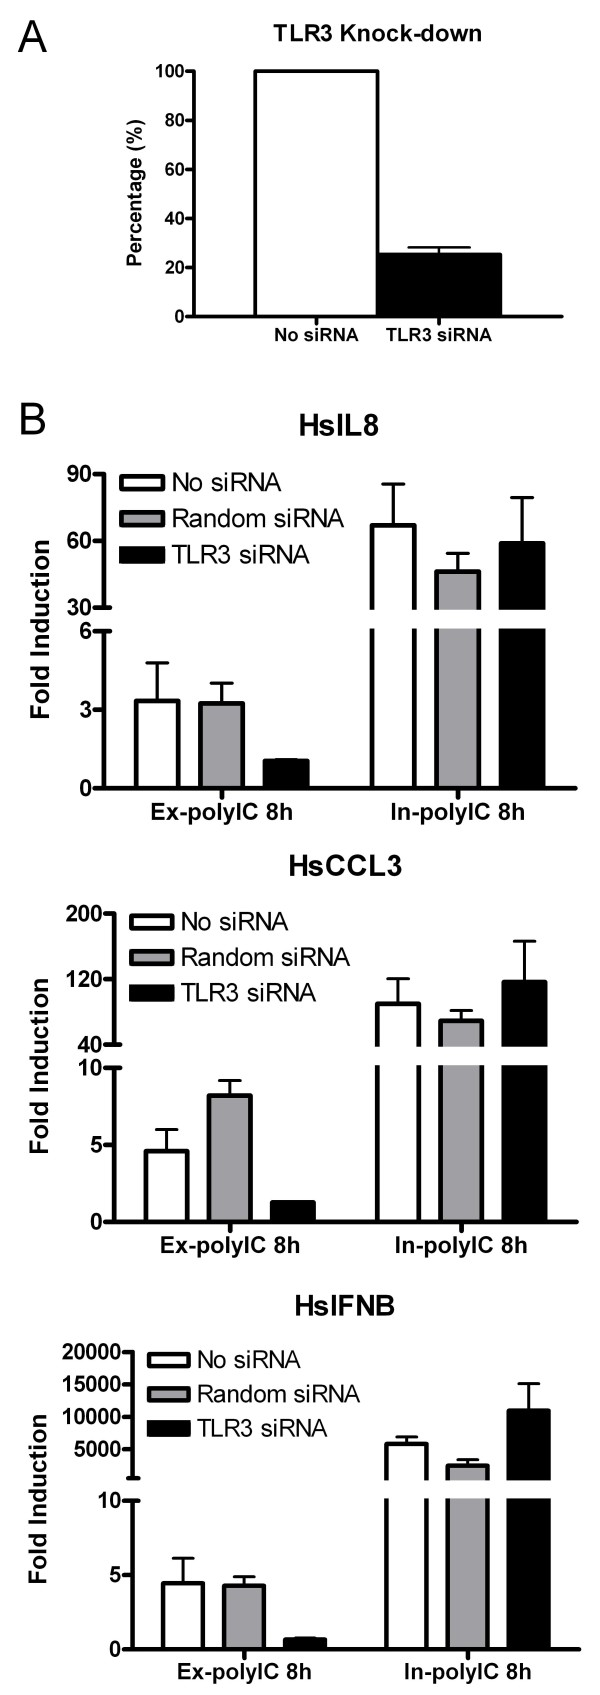 Involvement of TLR3 in gene activation in response to extracellular and intracellular polyIC treatments . HT1080 cell line was treated with 40 μg/ml of ex-polyIC and 0.4 μg/ml of in-polyIC for 8 hours after knocking down TLR3 using gene-specific siRNA. Control siRNA with random siRNA sequences was included to monitor non-specific inhibition. Gene expression was measured using qPCR and the mean from triplicate experiments was calculated. Error bars represent standard error. A. Nucleofection of TLR3 siRNA achieved about 75% knock-down efficiency. B. IL8, CCL3 and IFNB inductions in response to ex-polyIC treatment are dependent on TLR3 whereas the same gene inductions in response to in-polyIC treatment are independent of TLR3.